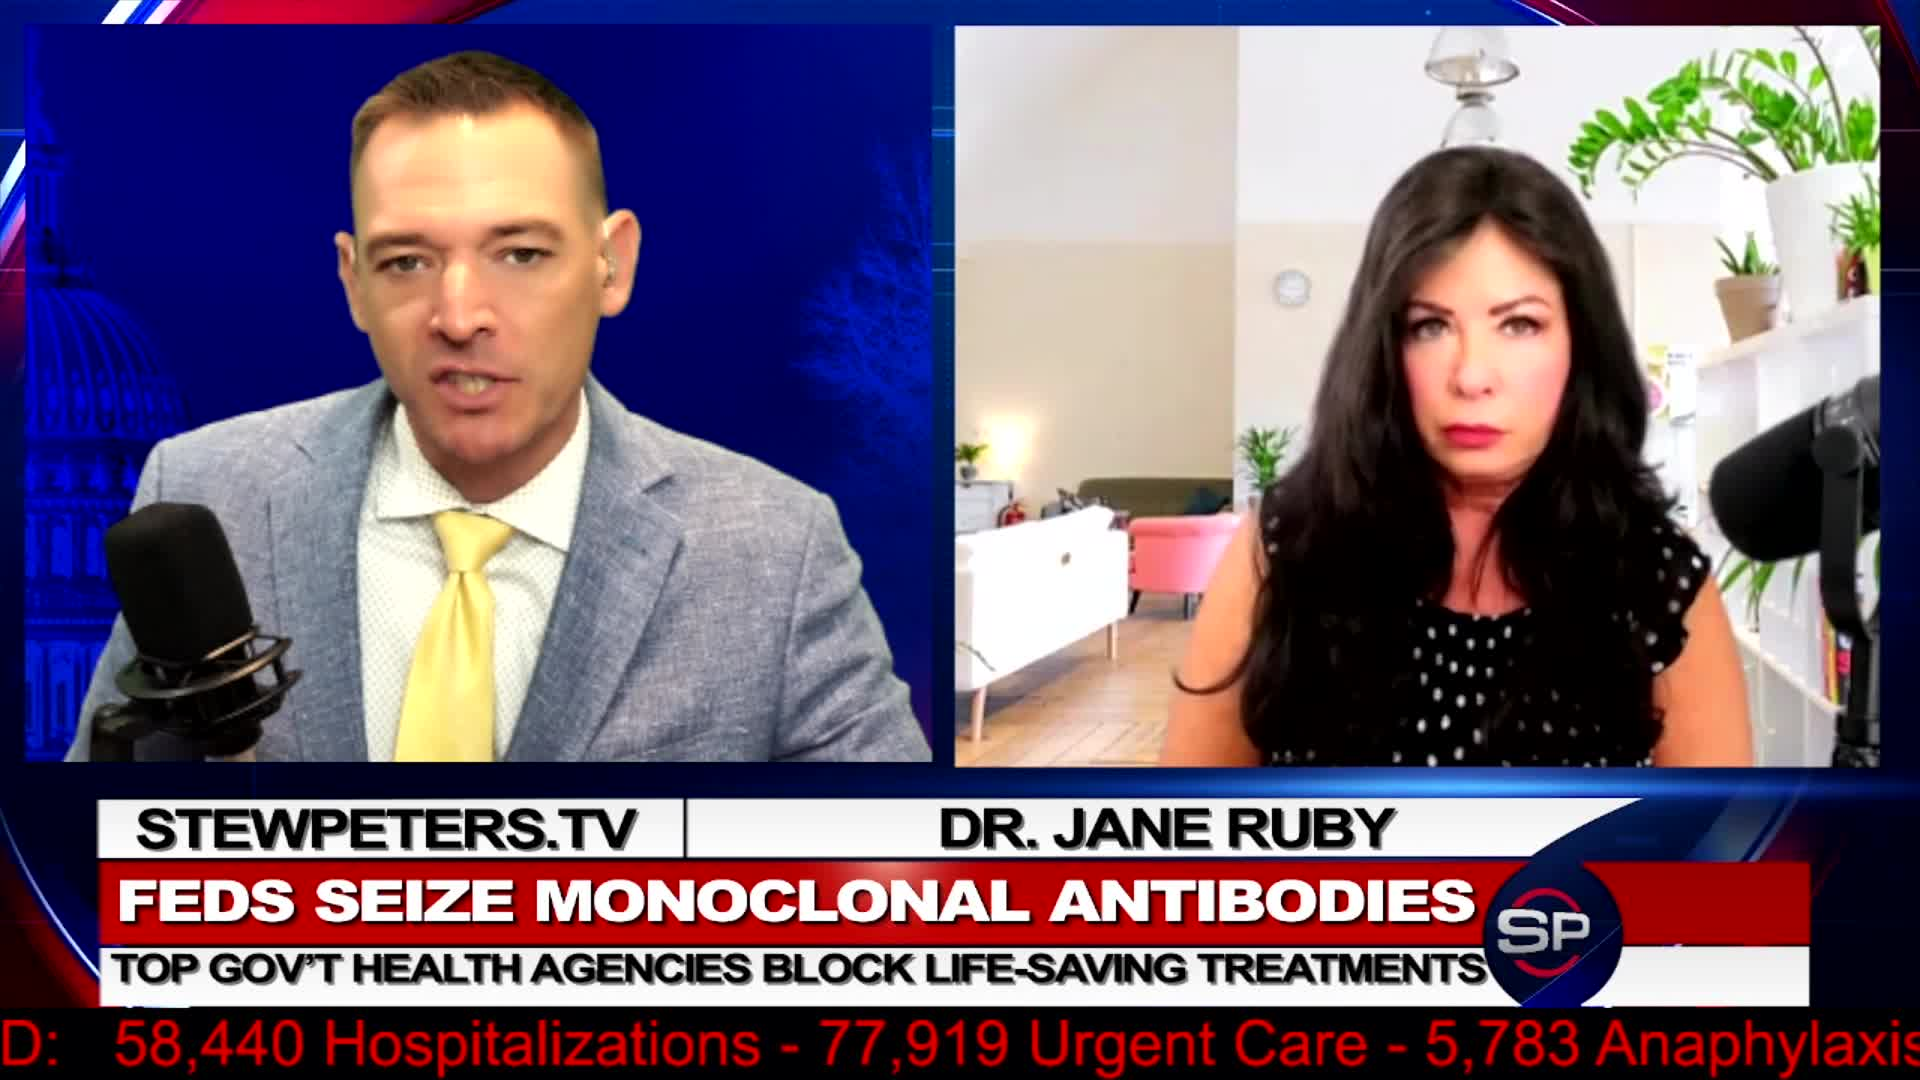 Stew Peters: Feds (Biden) Seize Monoclonal Antibodies! Life-Saving Treatments Banned! - Must Video